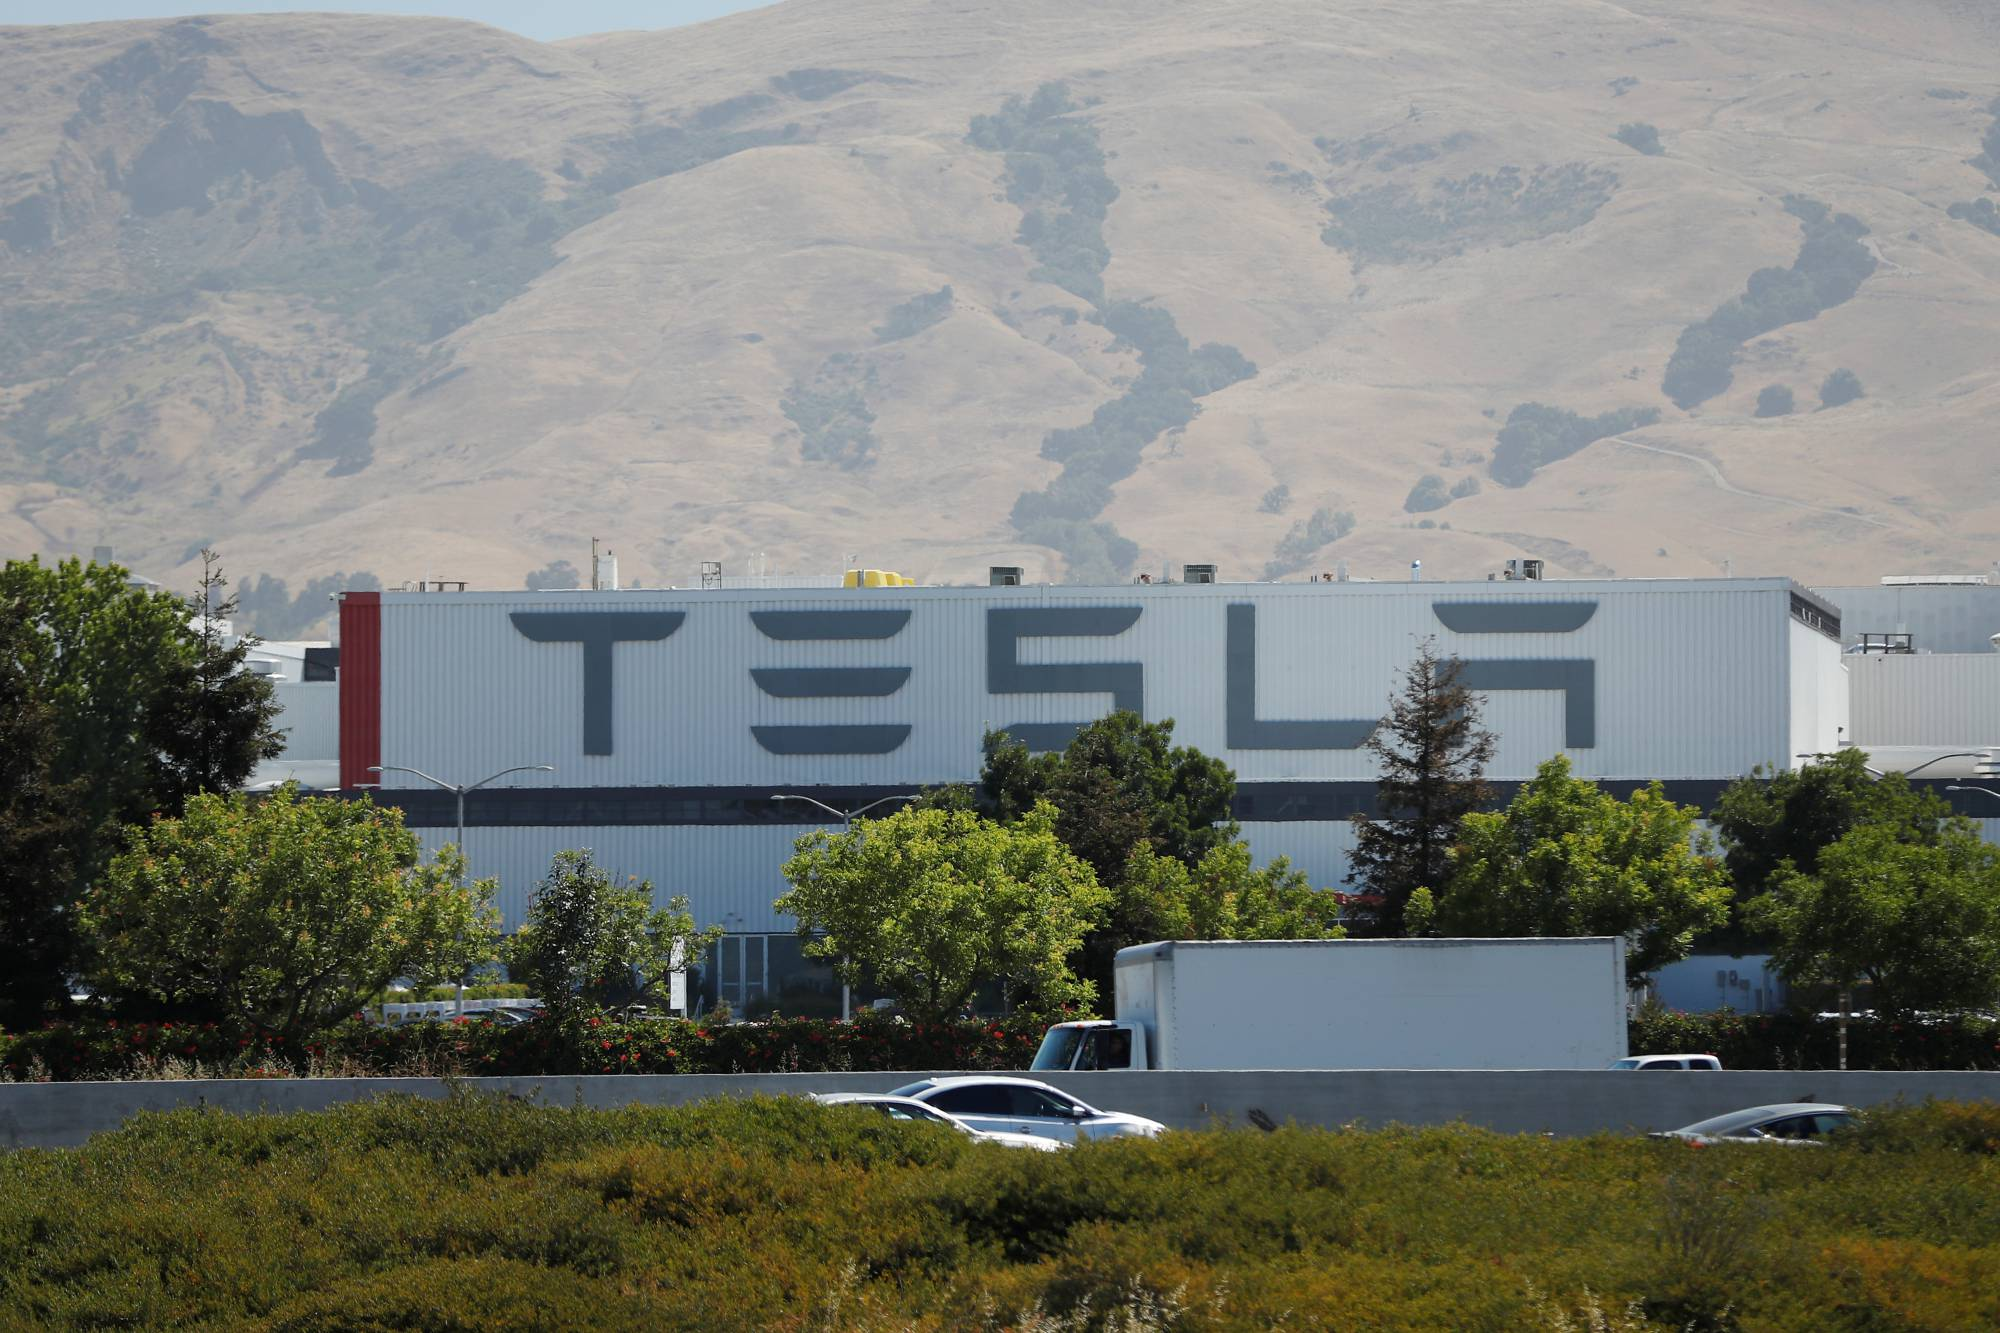 The Tesla factory is seen in Fremont